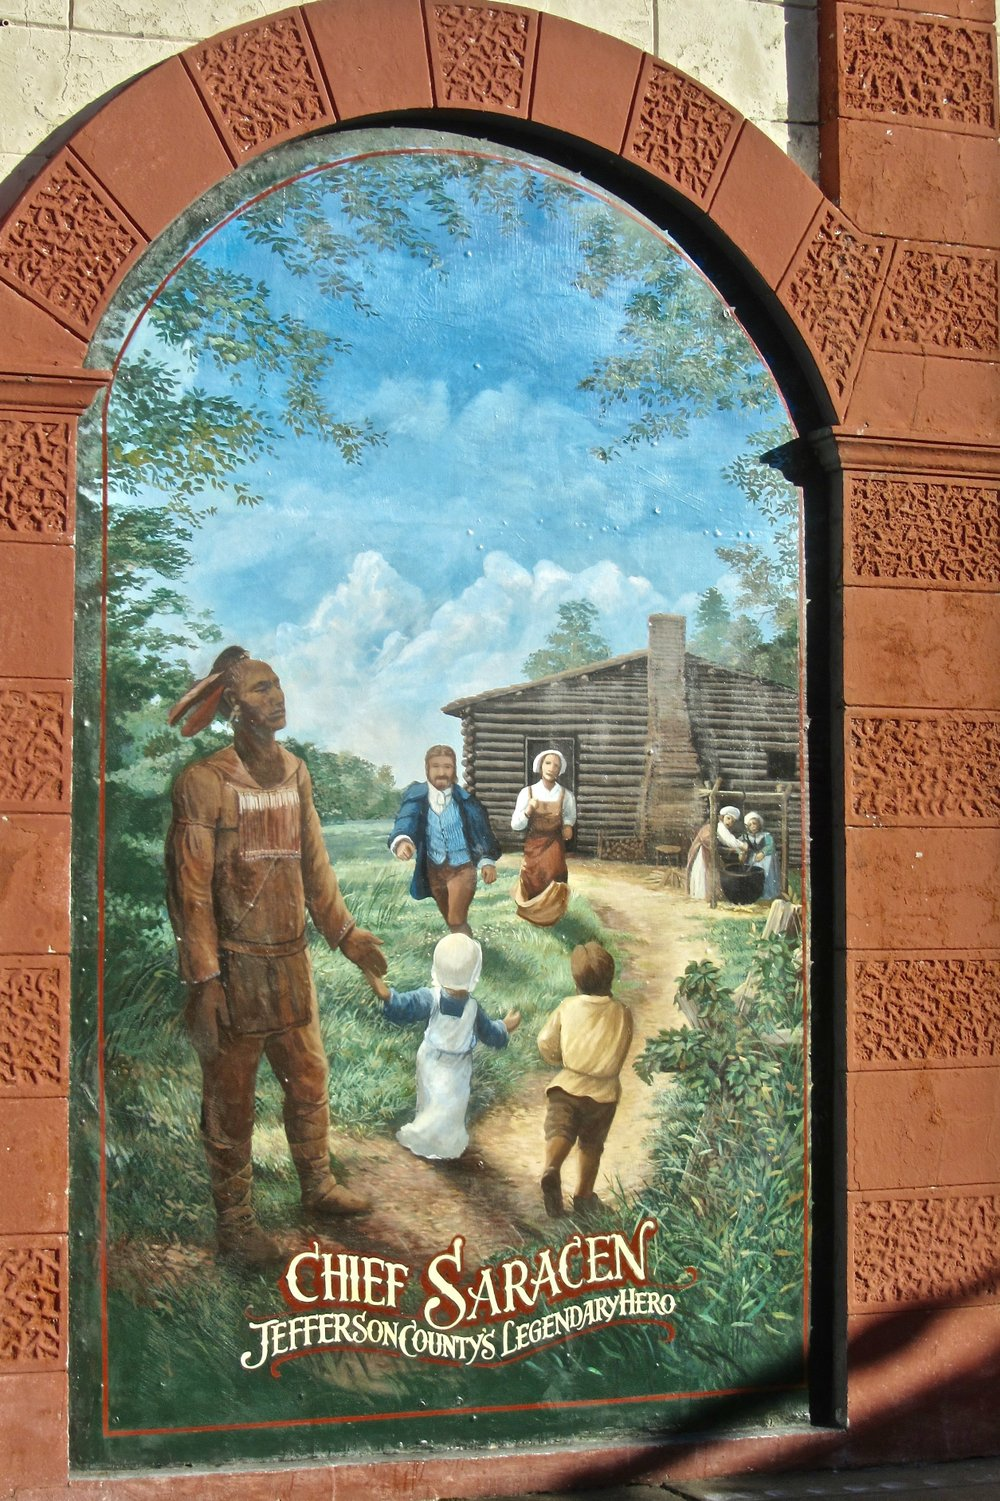 Downtown Pine Bluffs murals include one portraying the legend of Chief Saracen.(Special to the Democrat-Gazette/Marcia Schnedler)